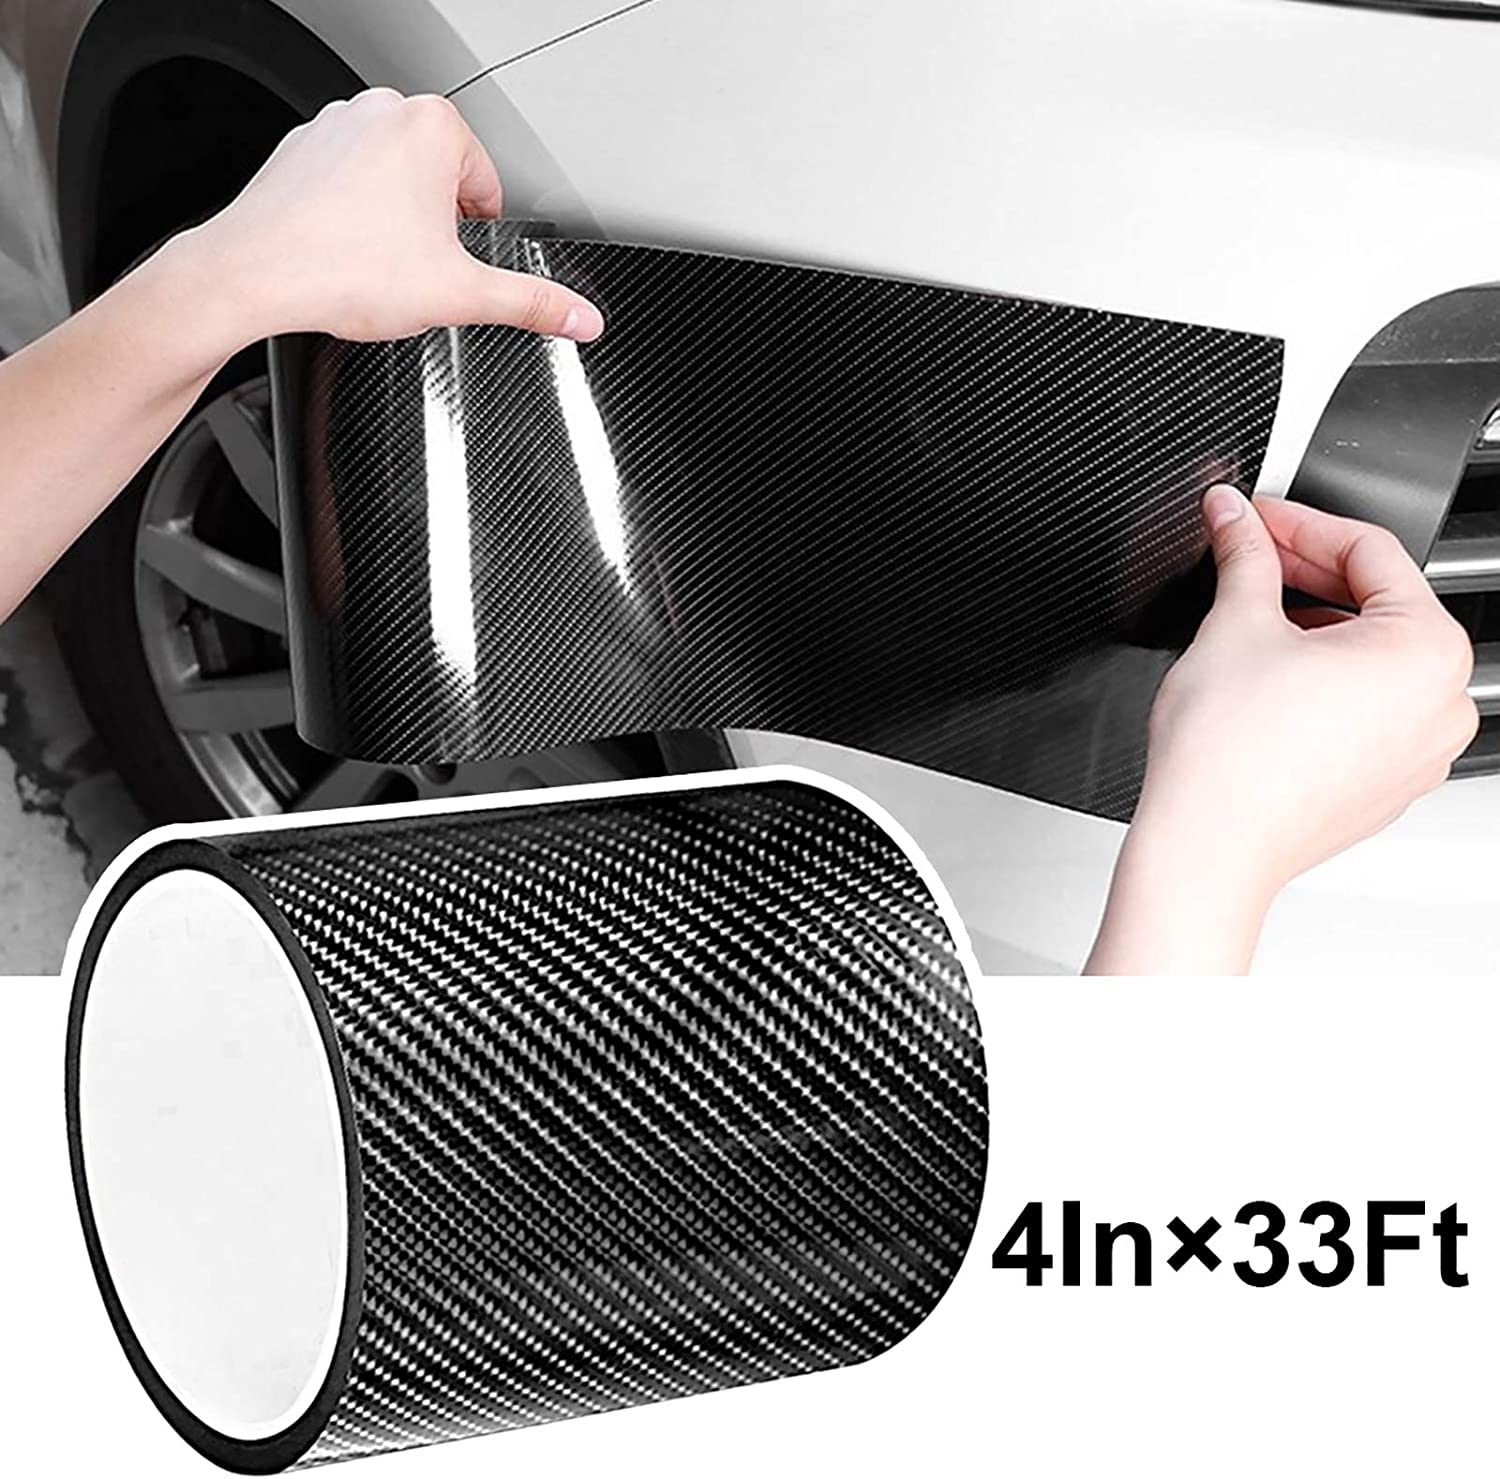 High quality new Universal Many popular brands Car Door Edge Guard Sill An Protector Automotive